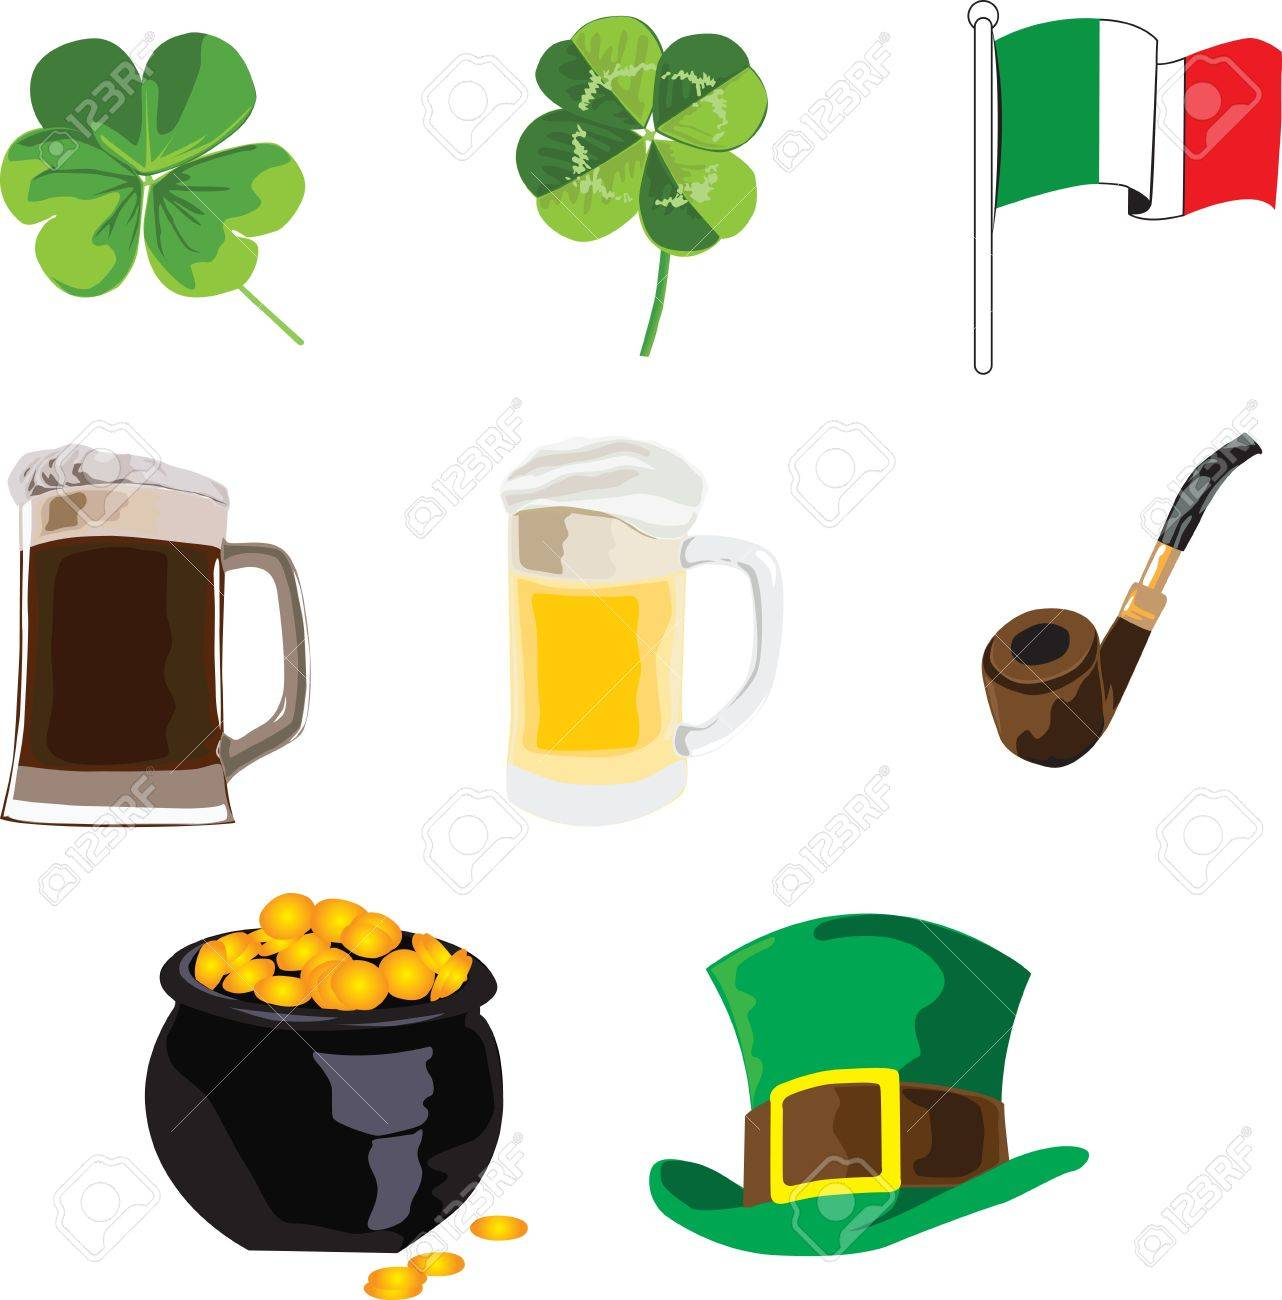 symbols of the holiday of St. Patrick on a white background Stock Vector - 12407339